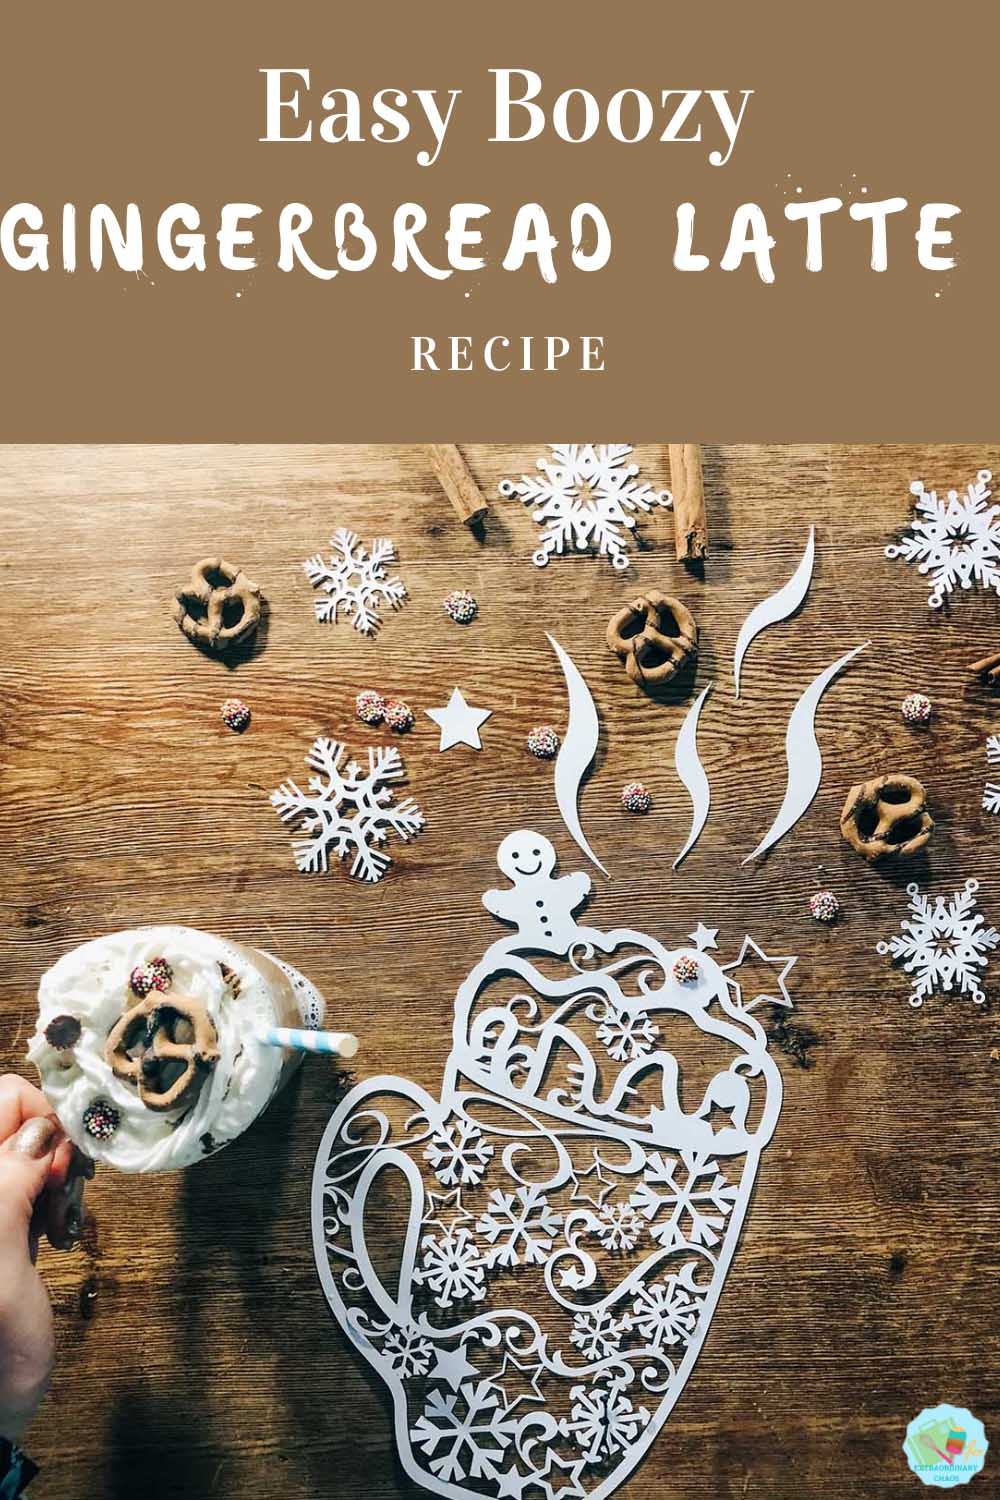 Easy Boozy Home Made Gingerbread Latte Recipe -2